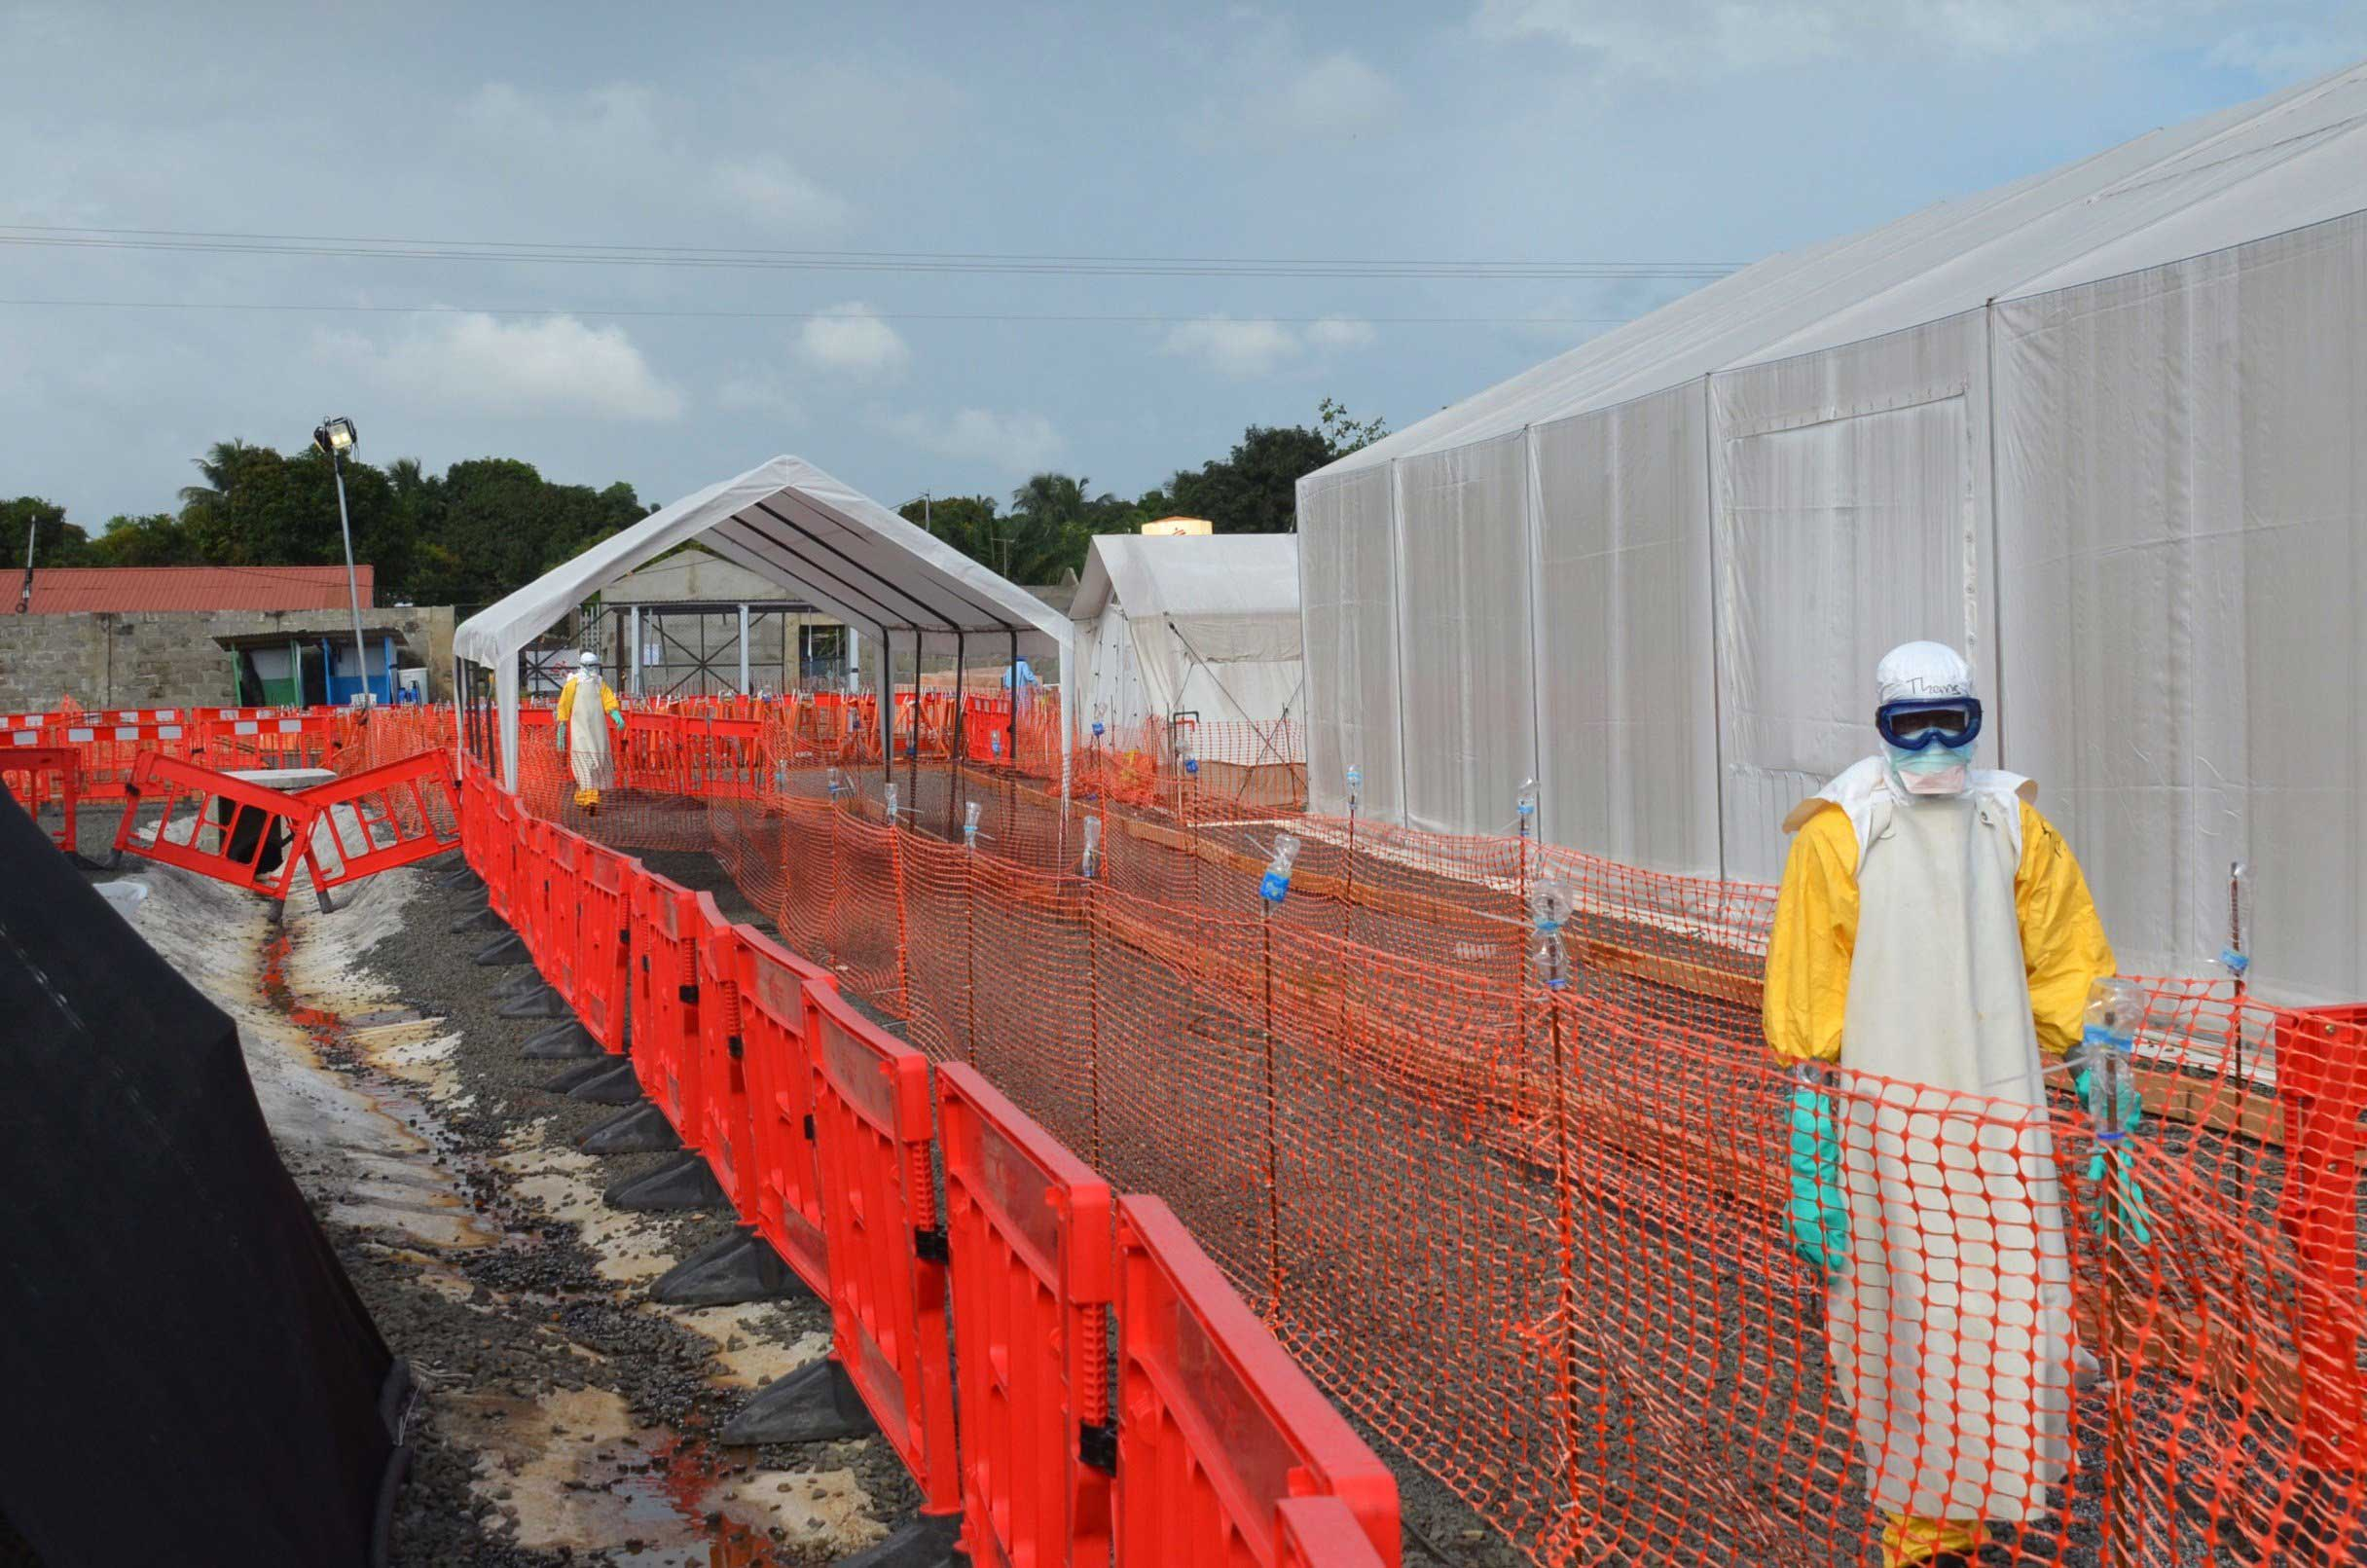 Health workers wearing Personal Protective Equipments (PPE) stand outside an Ebola treatment center run by Medecins Sans Frontieres (Doctors without Borders -- MSF) in Monrovia, Liberia on Oct. 27, 2014.